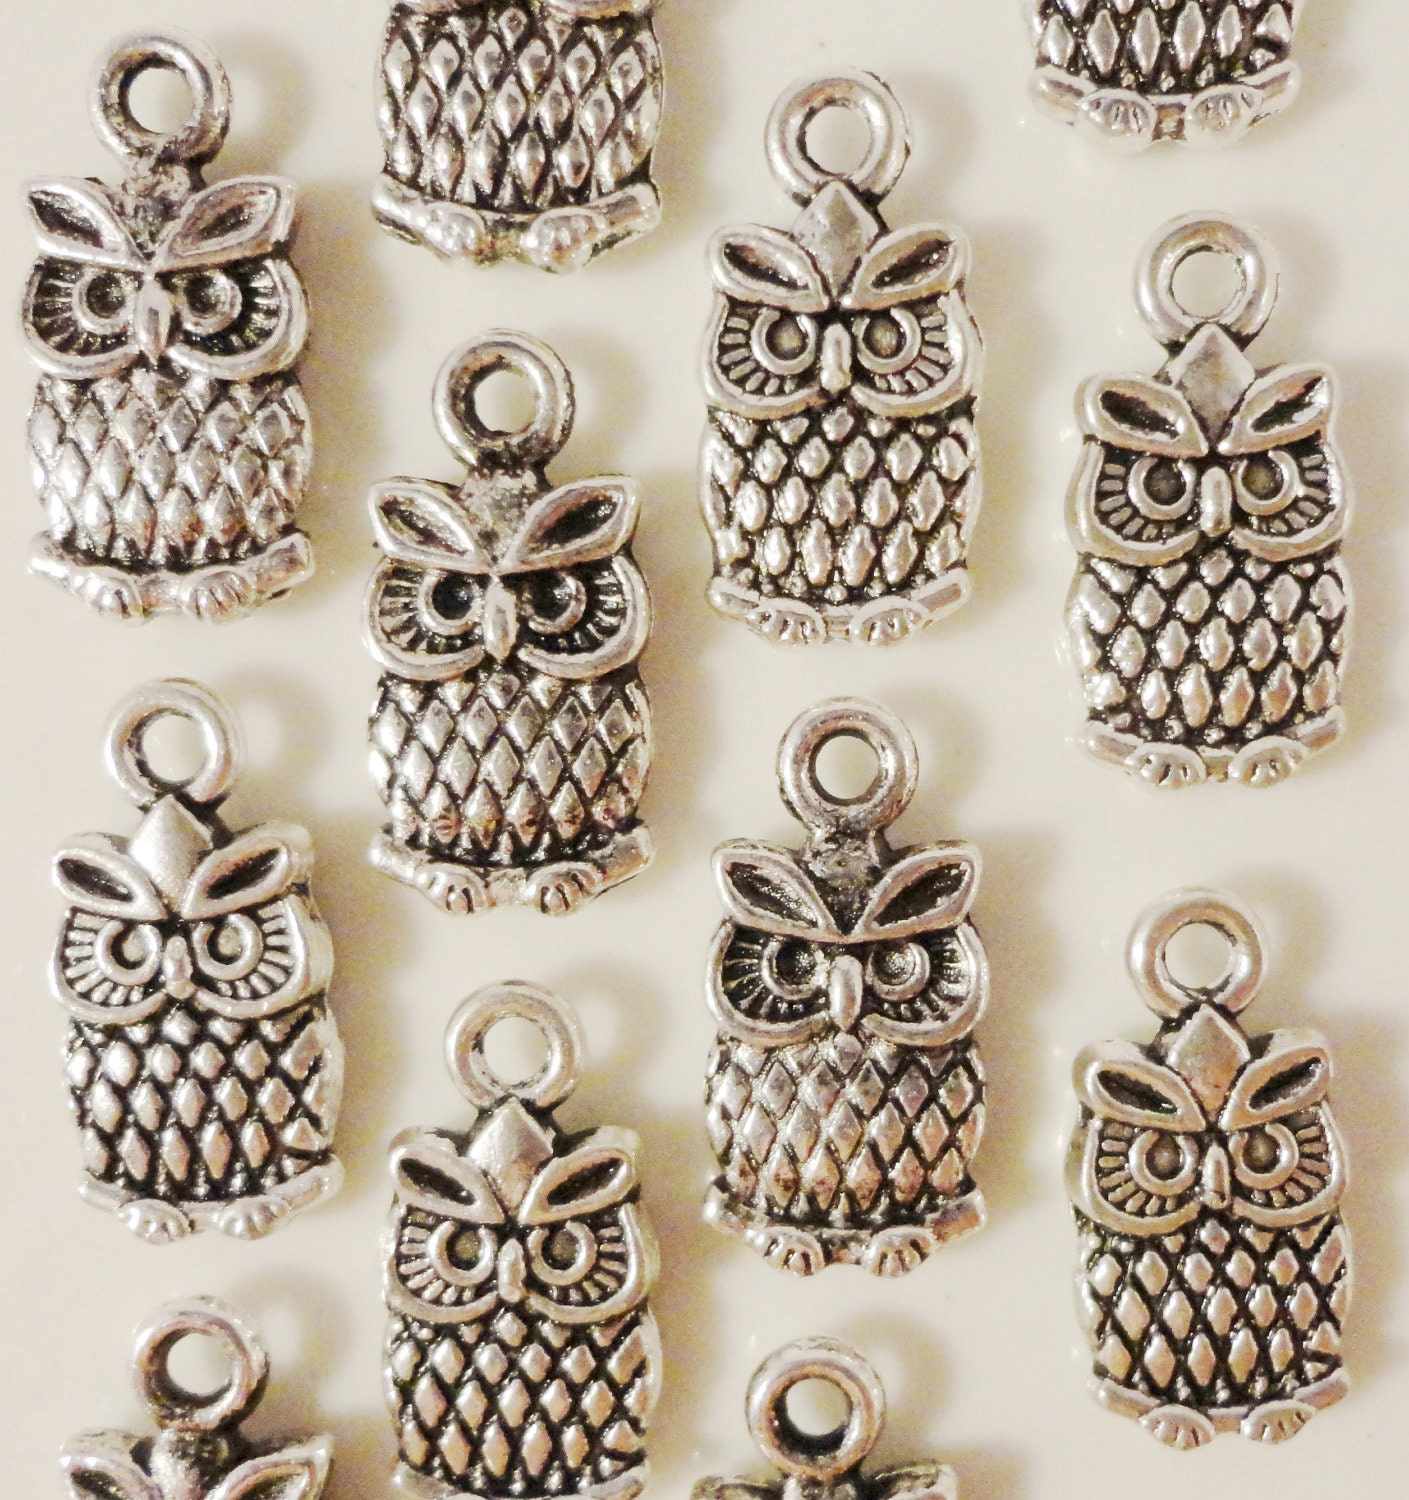 Silver Owl Charms 15x7mm Antique Silver Tone Metal Small Owl Bird Charm Pendant Jewelry Findings 12pcs - BusyBeeBeadSupplies